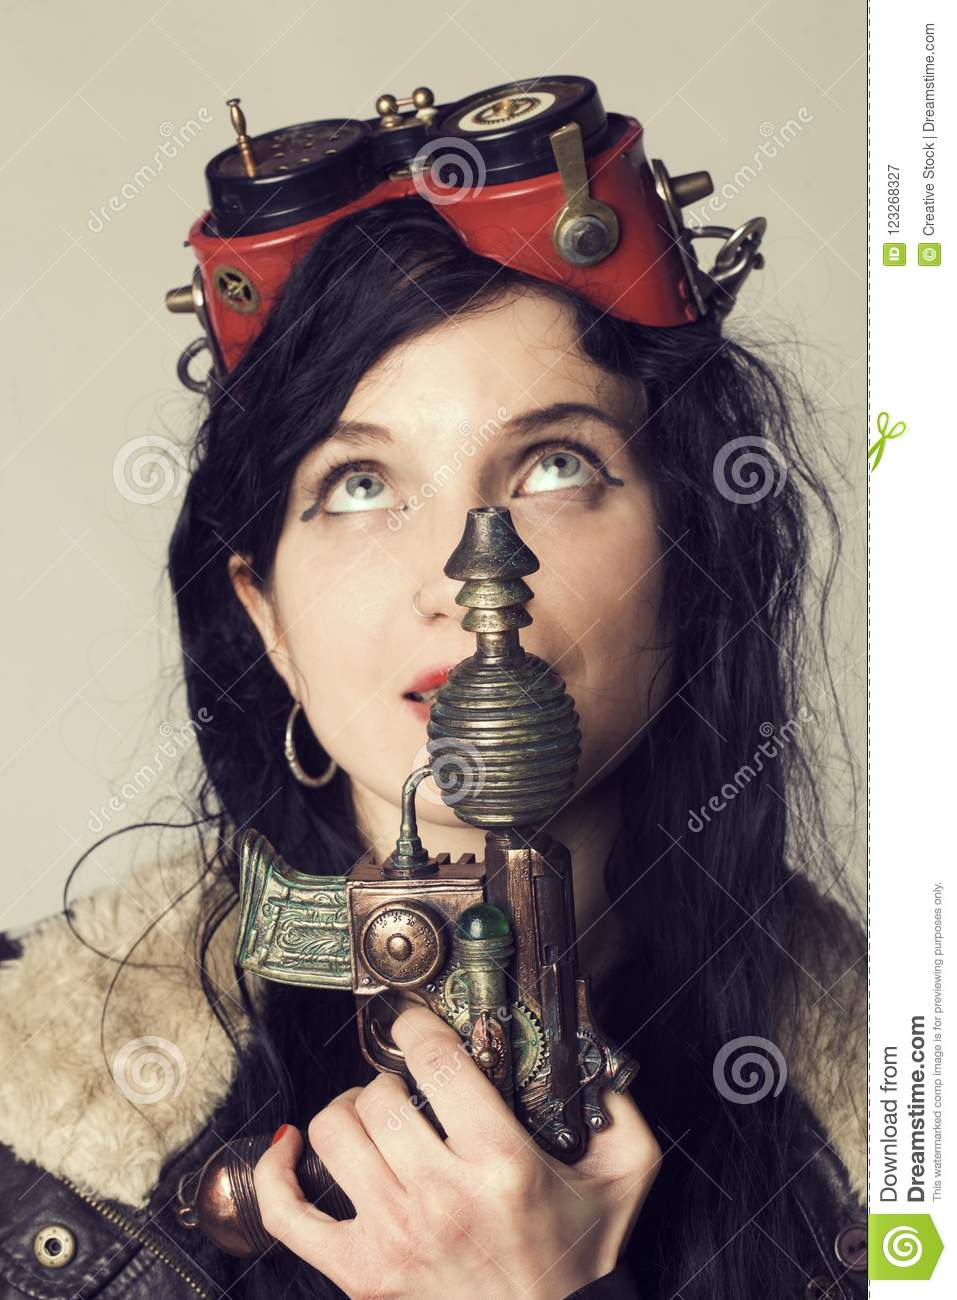 sci fi dieselpunk or steampunk girl with aviator goggles stock image